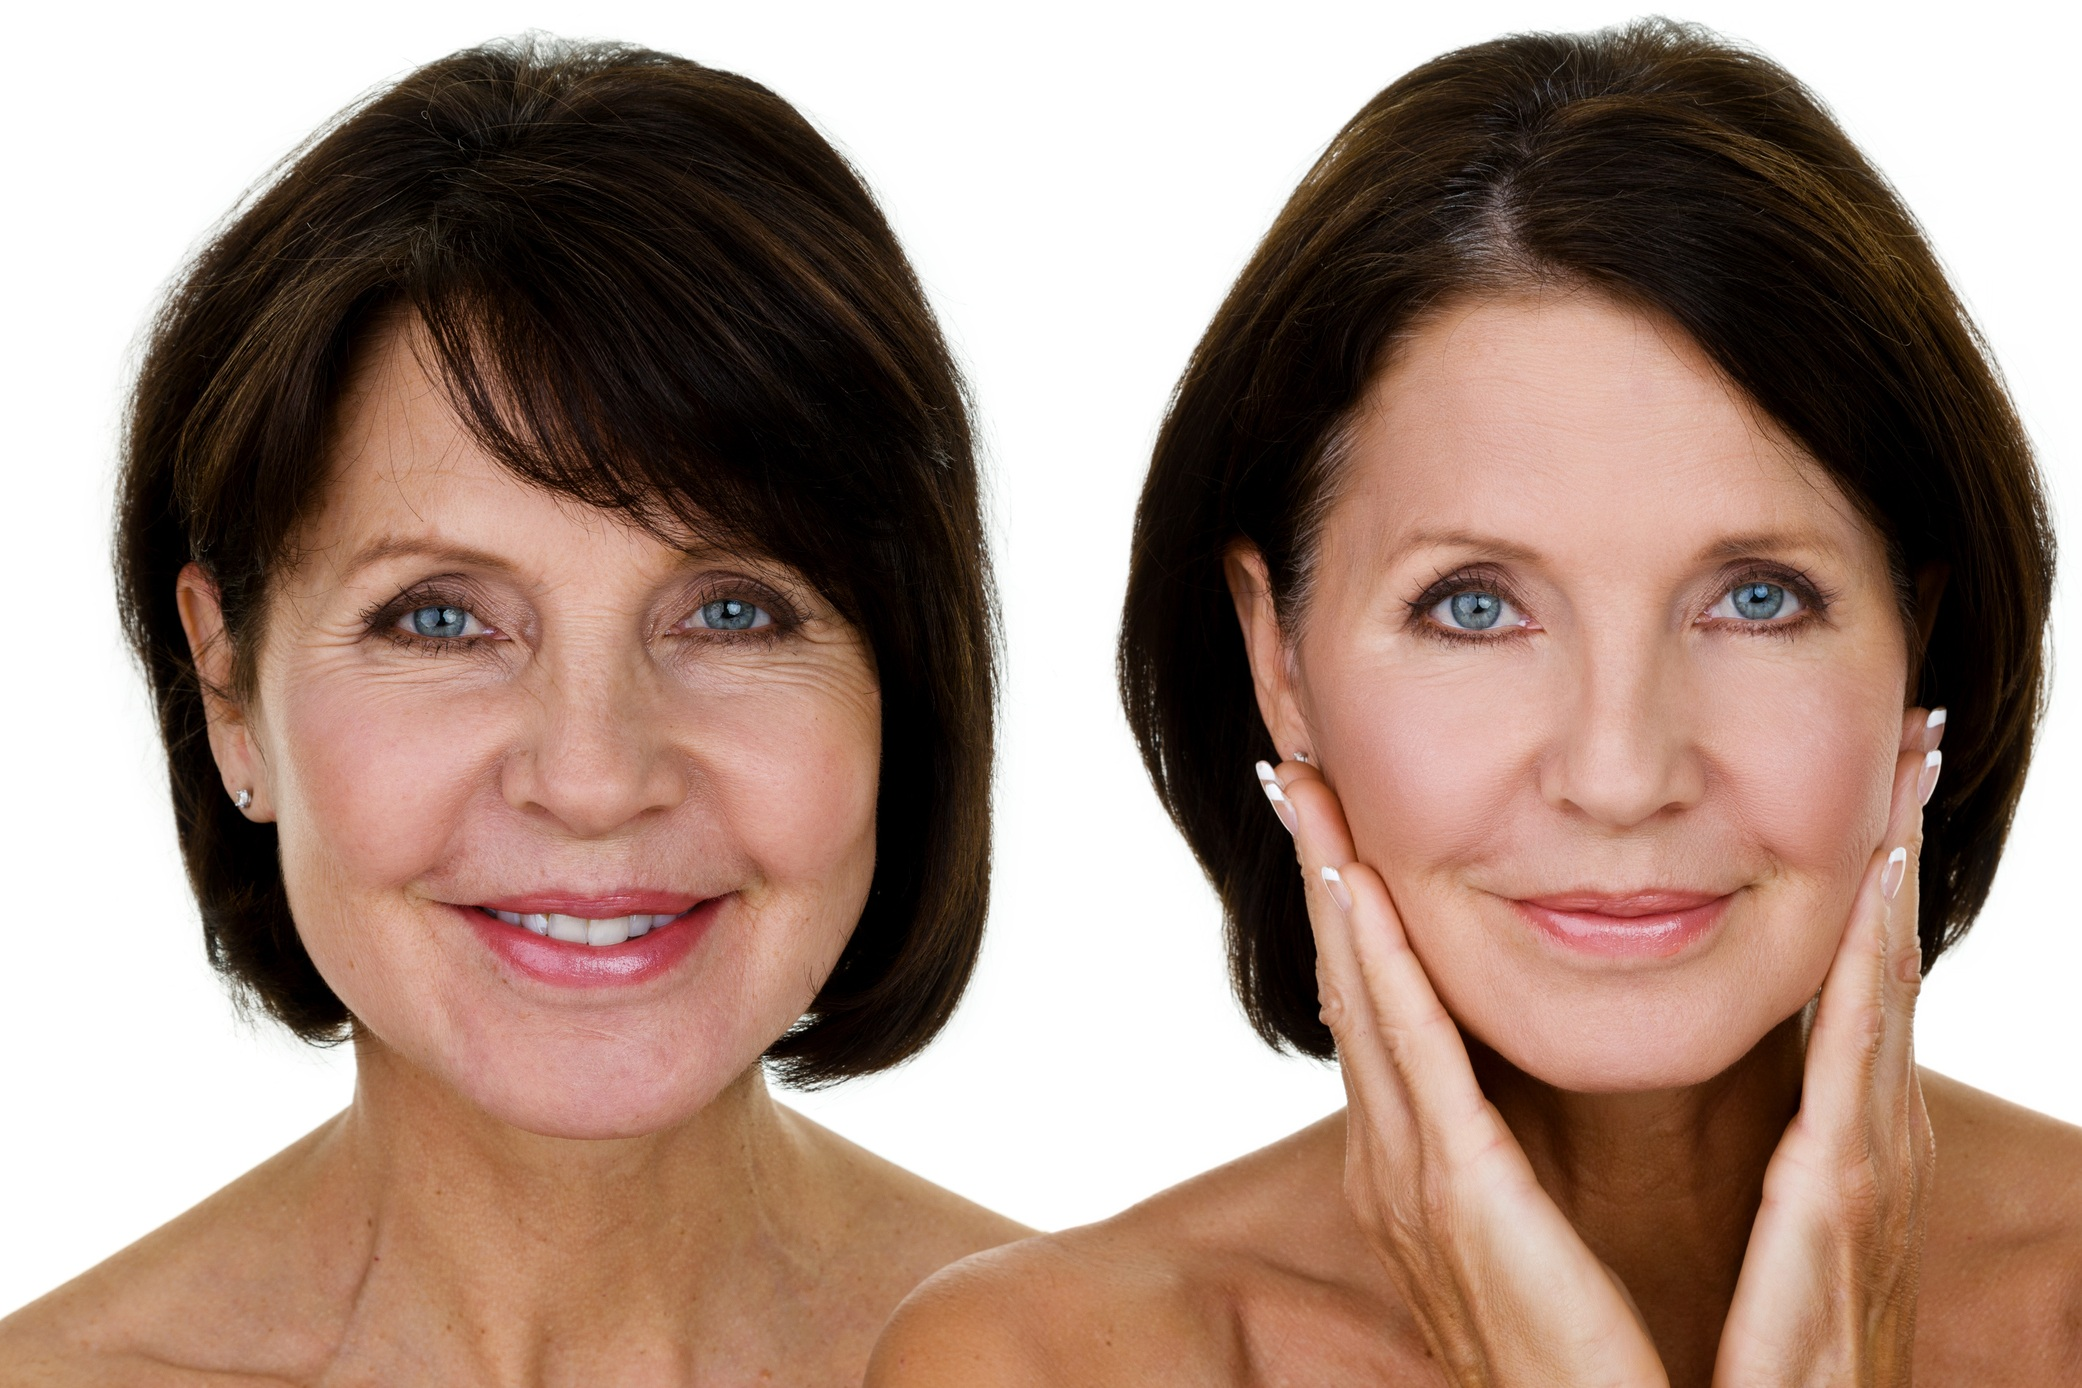 The Liquid Lift - Hyaluronic acid fillers - • Lift and combat the volume loss associated with aging• Volume enhancement for Lips, cheeks